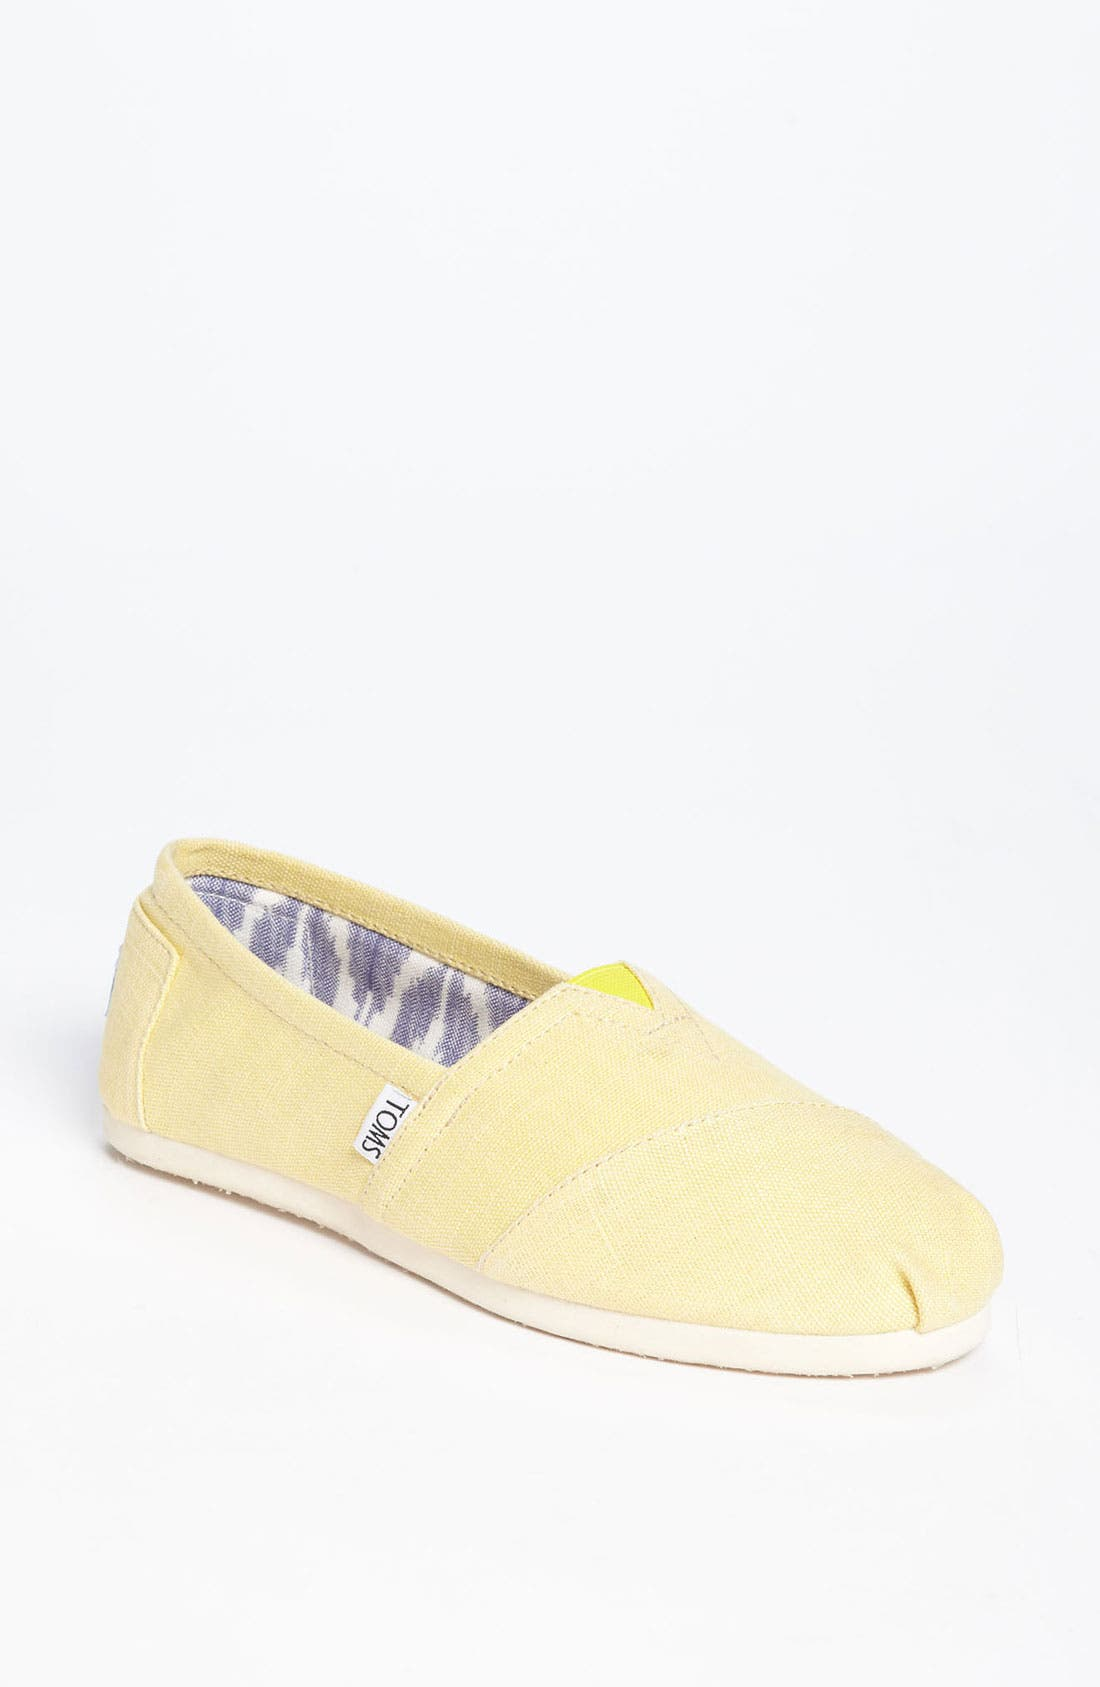 Alternate Image 1 Selected - TOMS 'Earthwise' Slip-On (Nordstrom Exclusive) (Women)